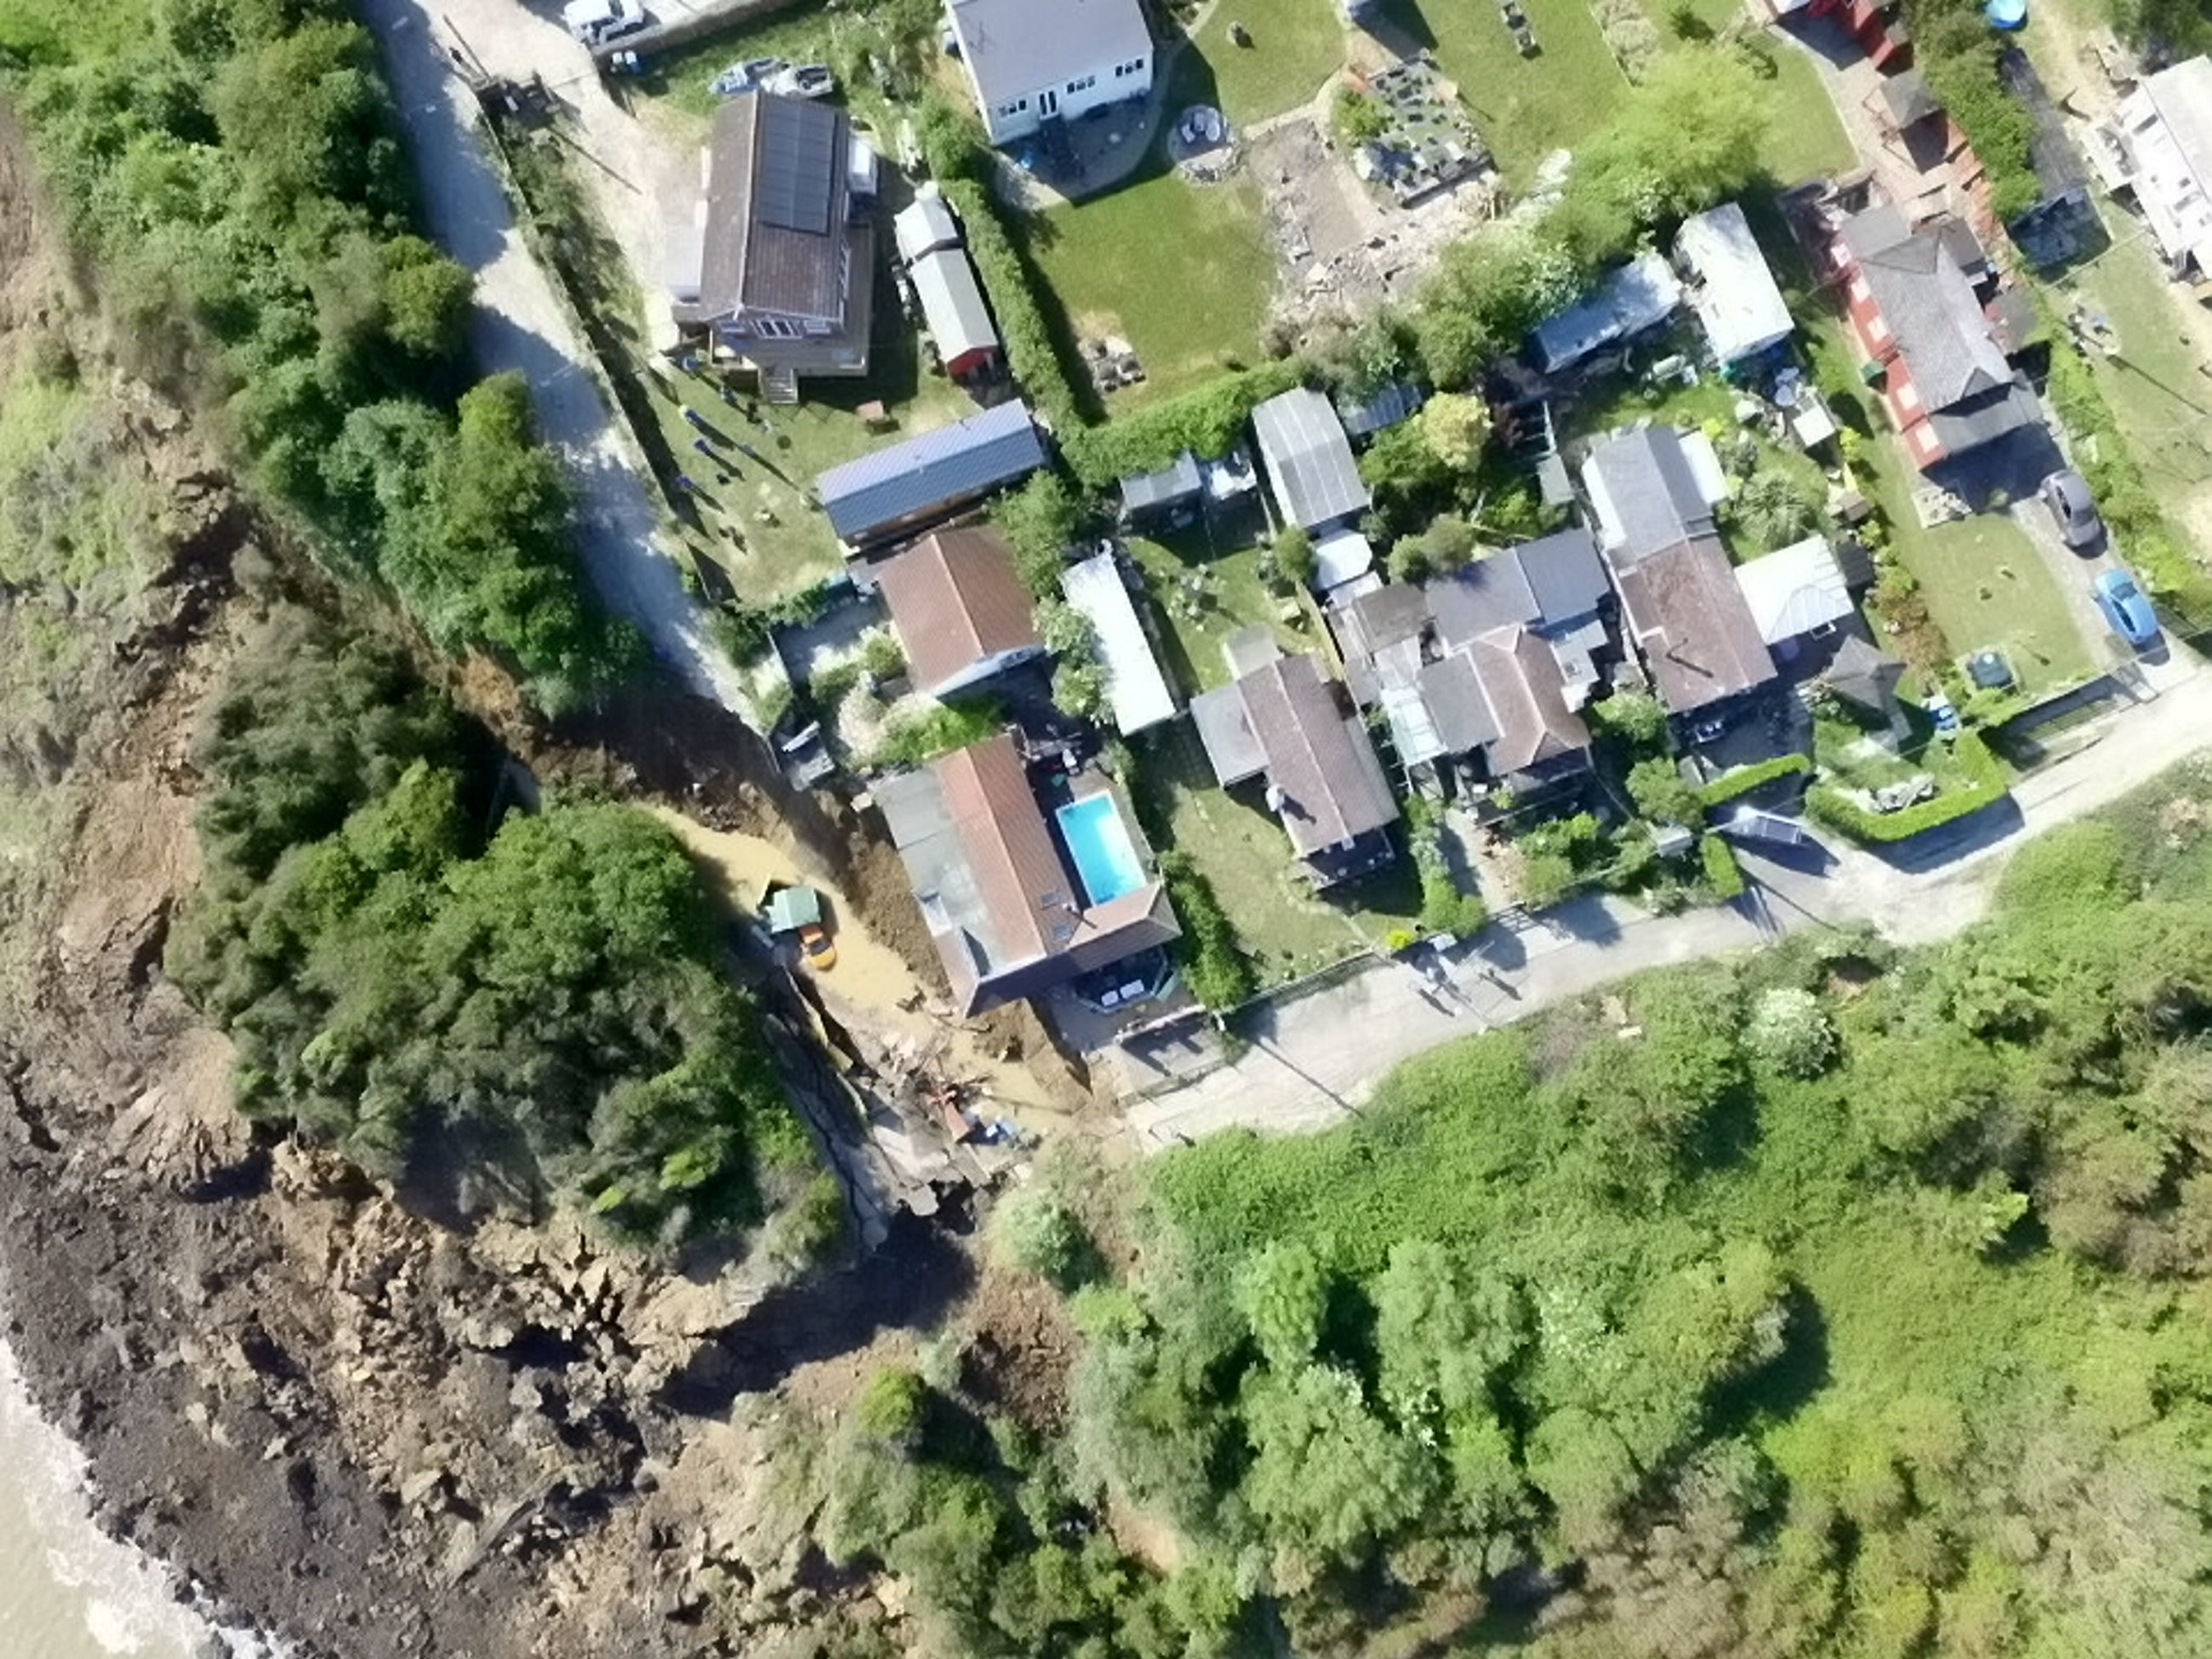 Residents were left without electricity and one person's house was in danger of falling down the cliff. (Picture: SWNS)